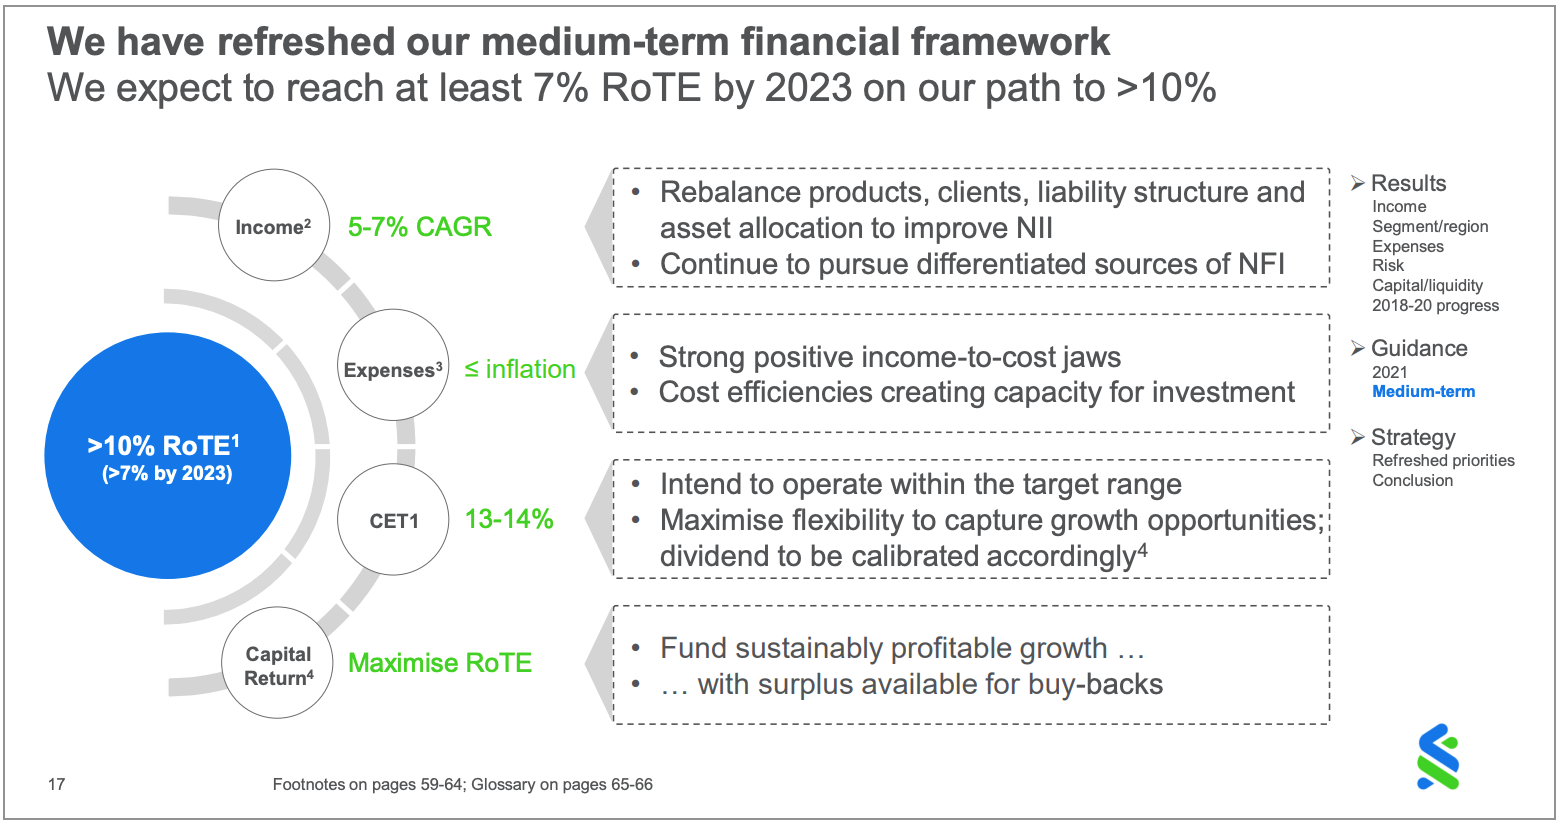 Standard Chartered (STAN) 2023 return on tangible equity (ROTE) target